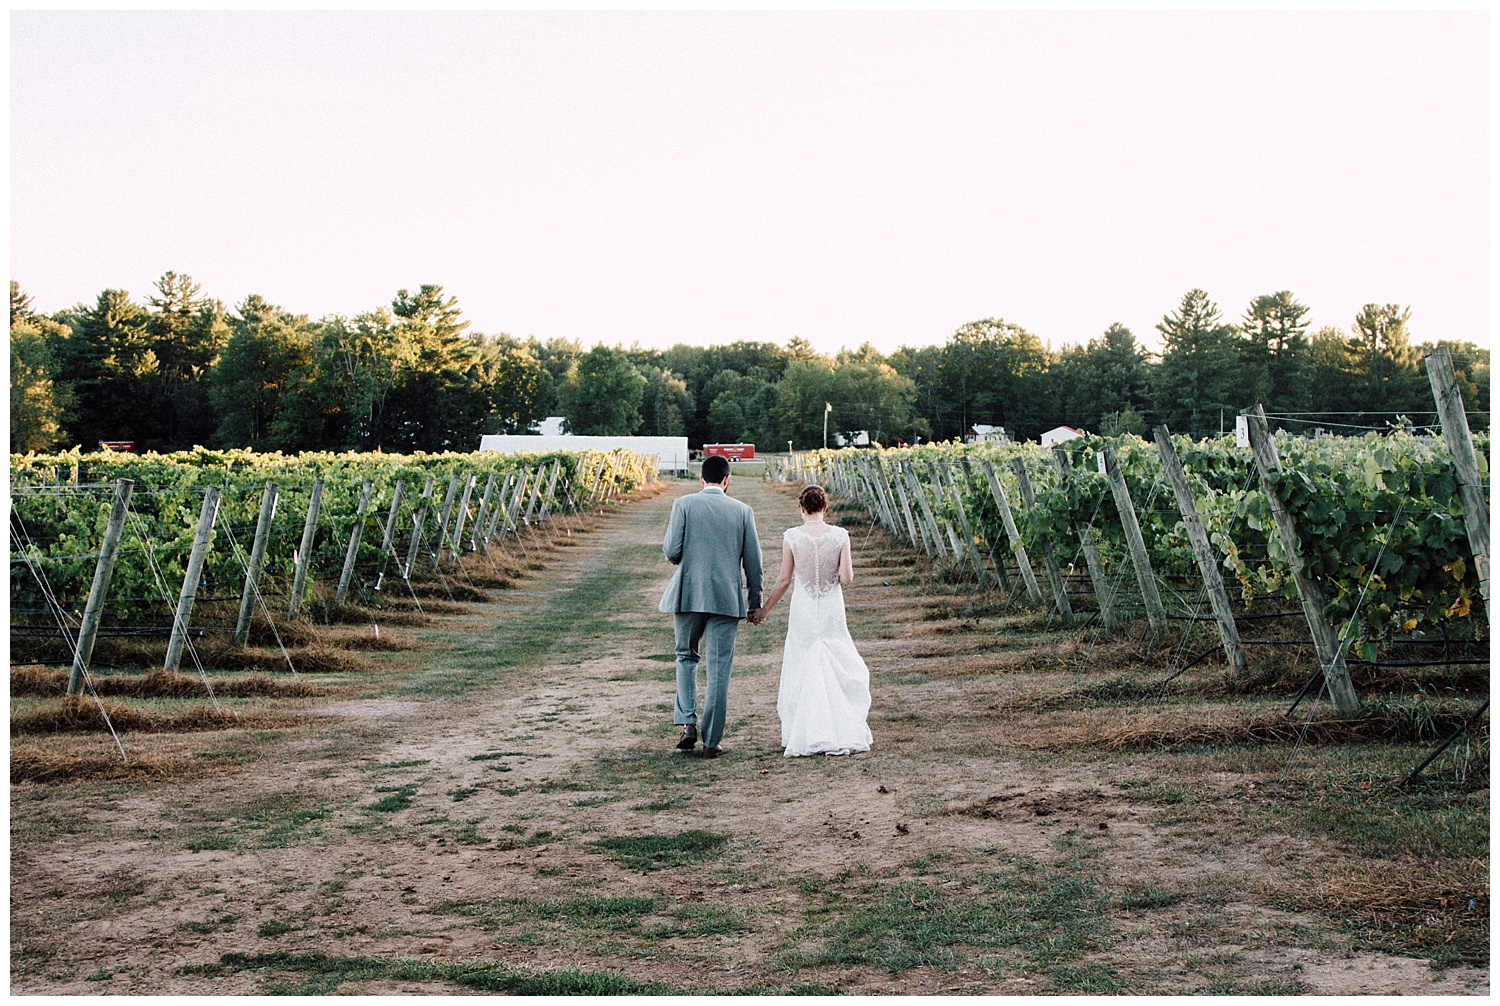 Sunset stroll on their relaxed wedding day through Flag Hills Vineyard in Lee, NH